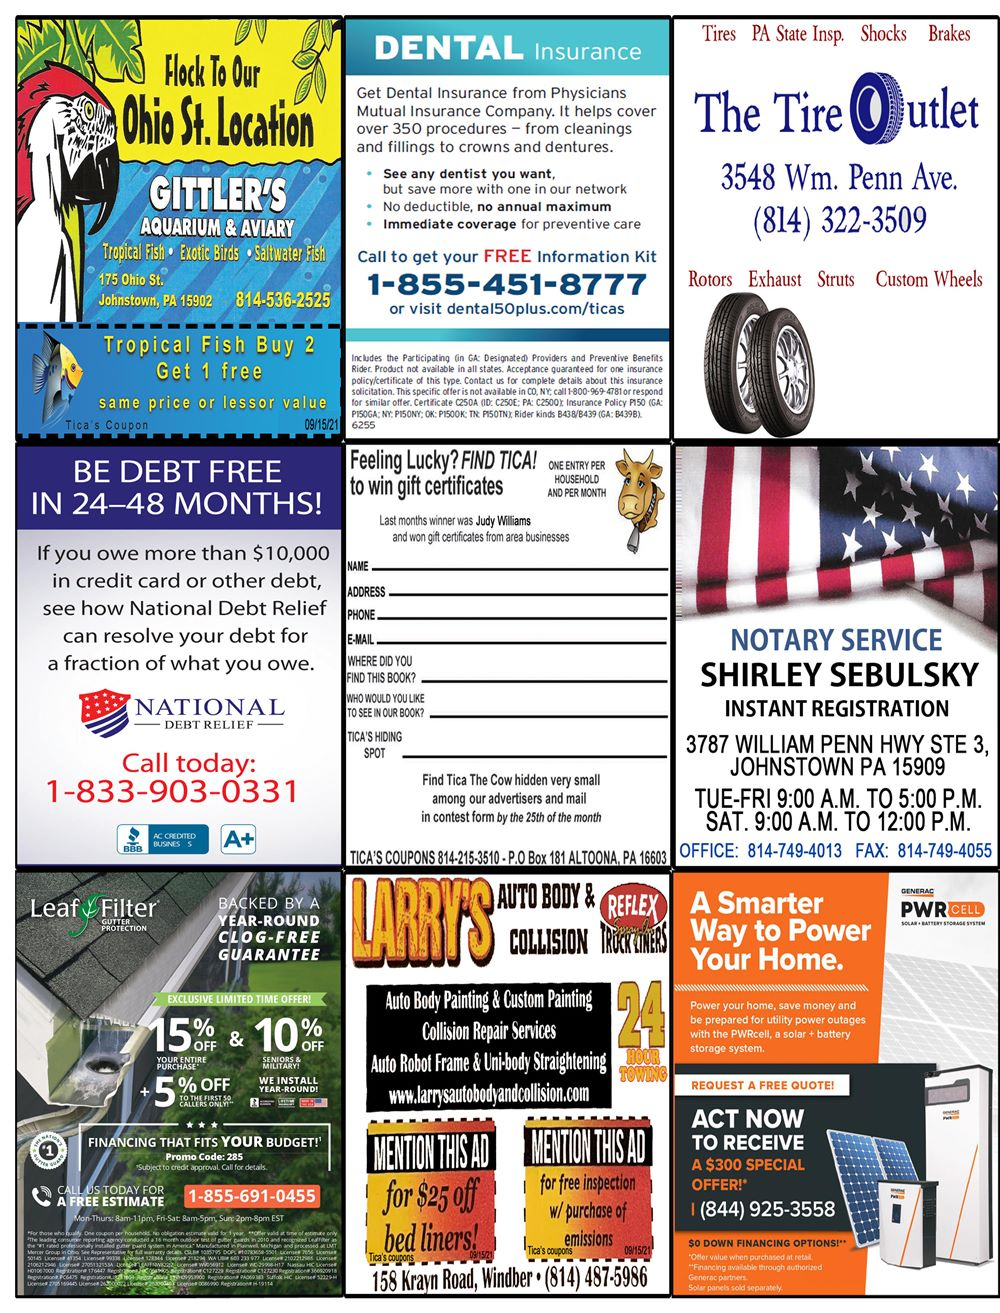 Johnstown coupon book pg 2 Aug 21